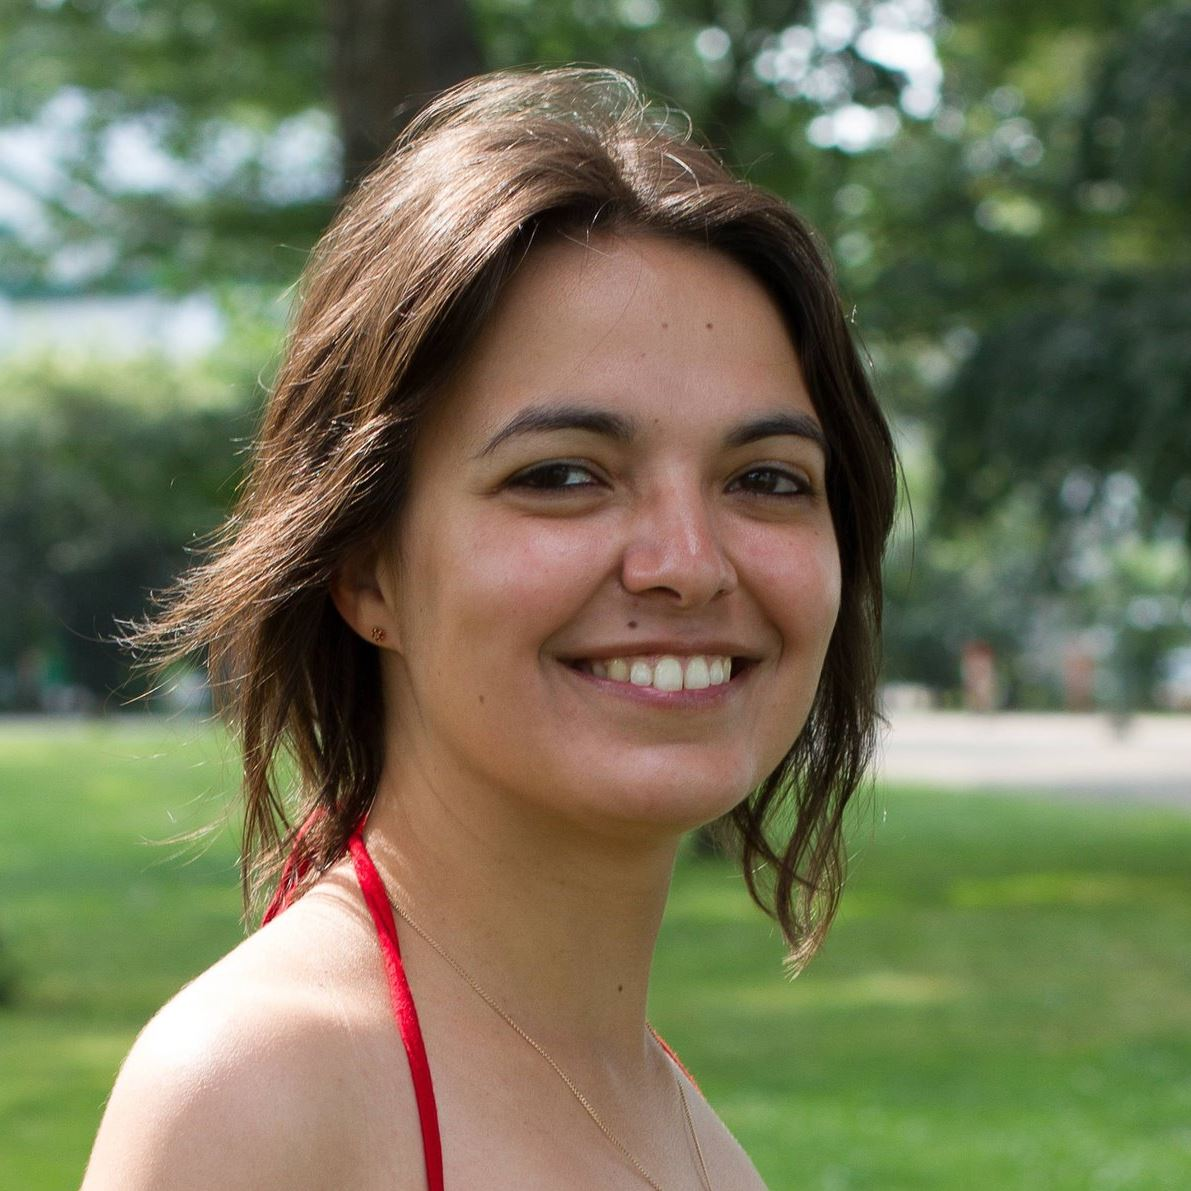 Leila Rebbouh, owner of LR Research Data Science LLC